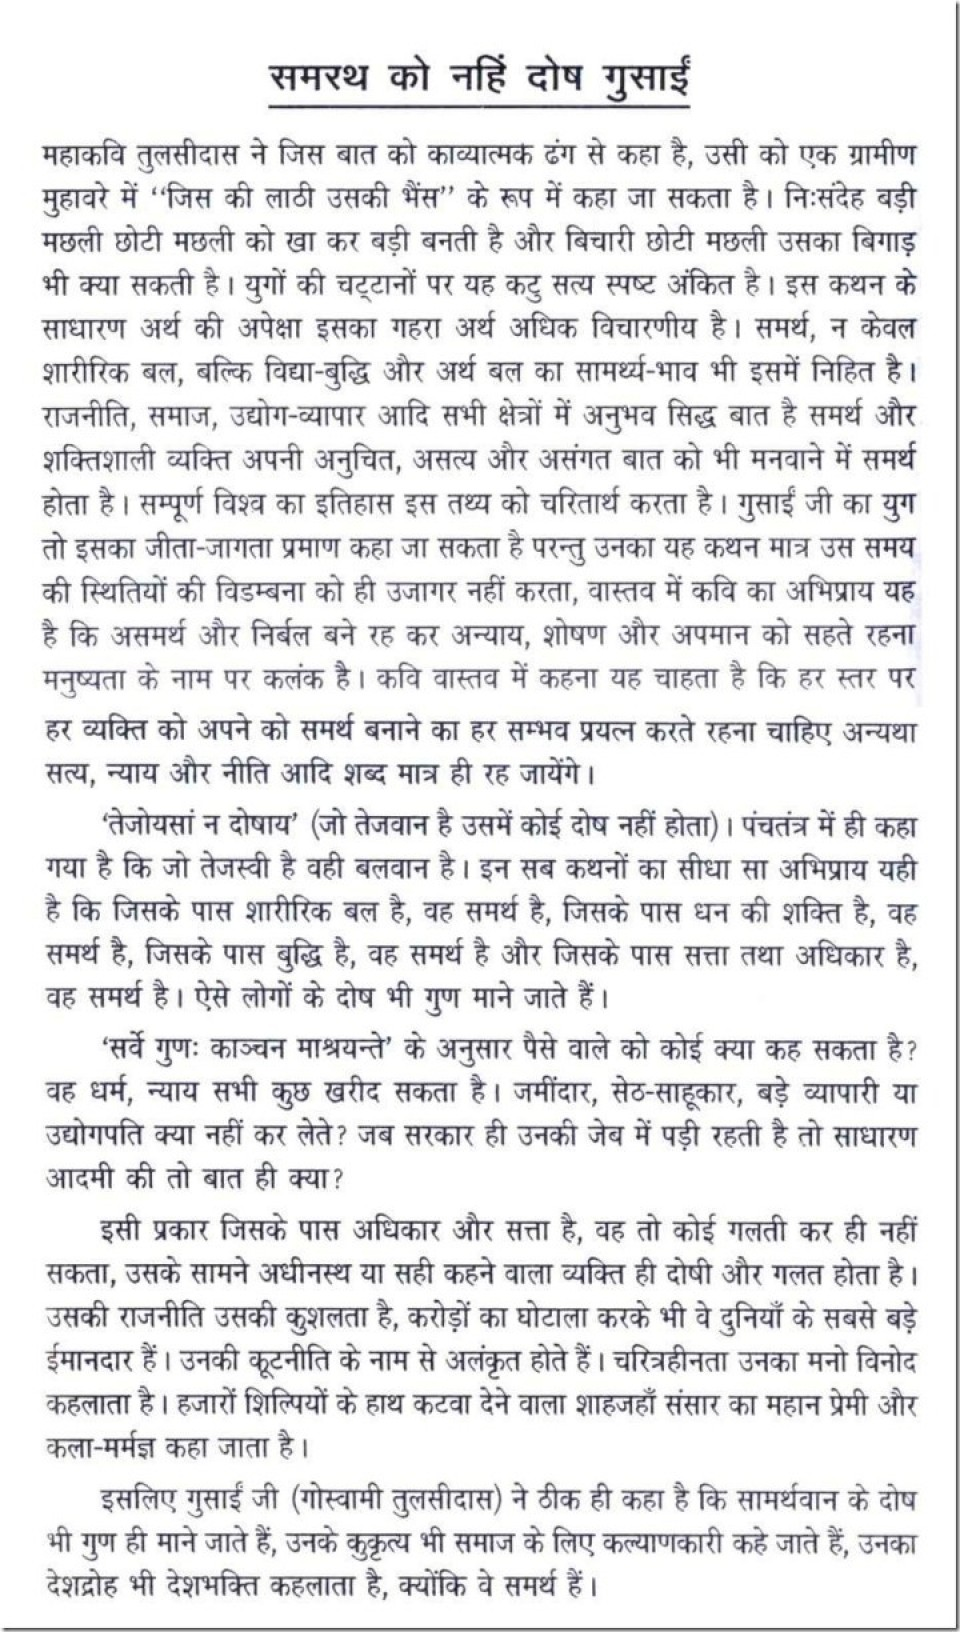 007 Good Habits Essay In Hindi Example Hh0055 Thumbresize7202c1224 Exceptional Reading Habit Wikipedia 960